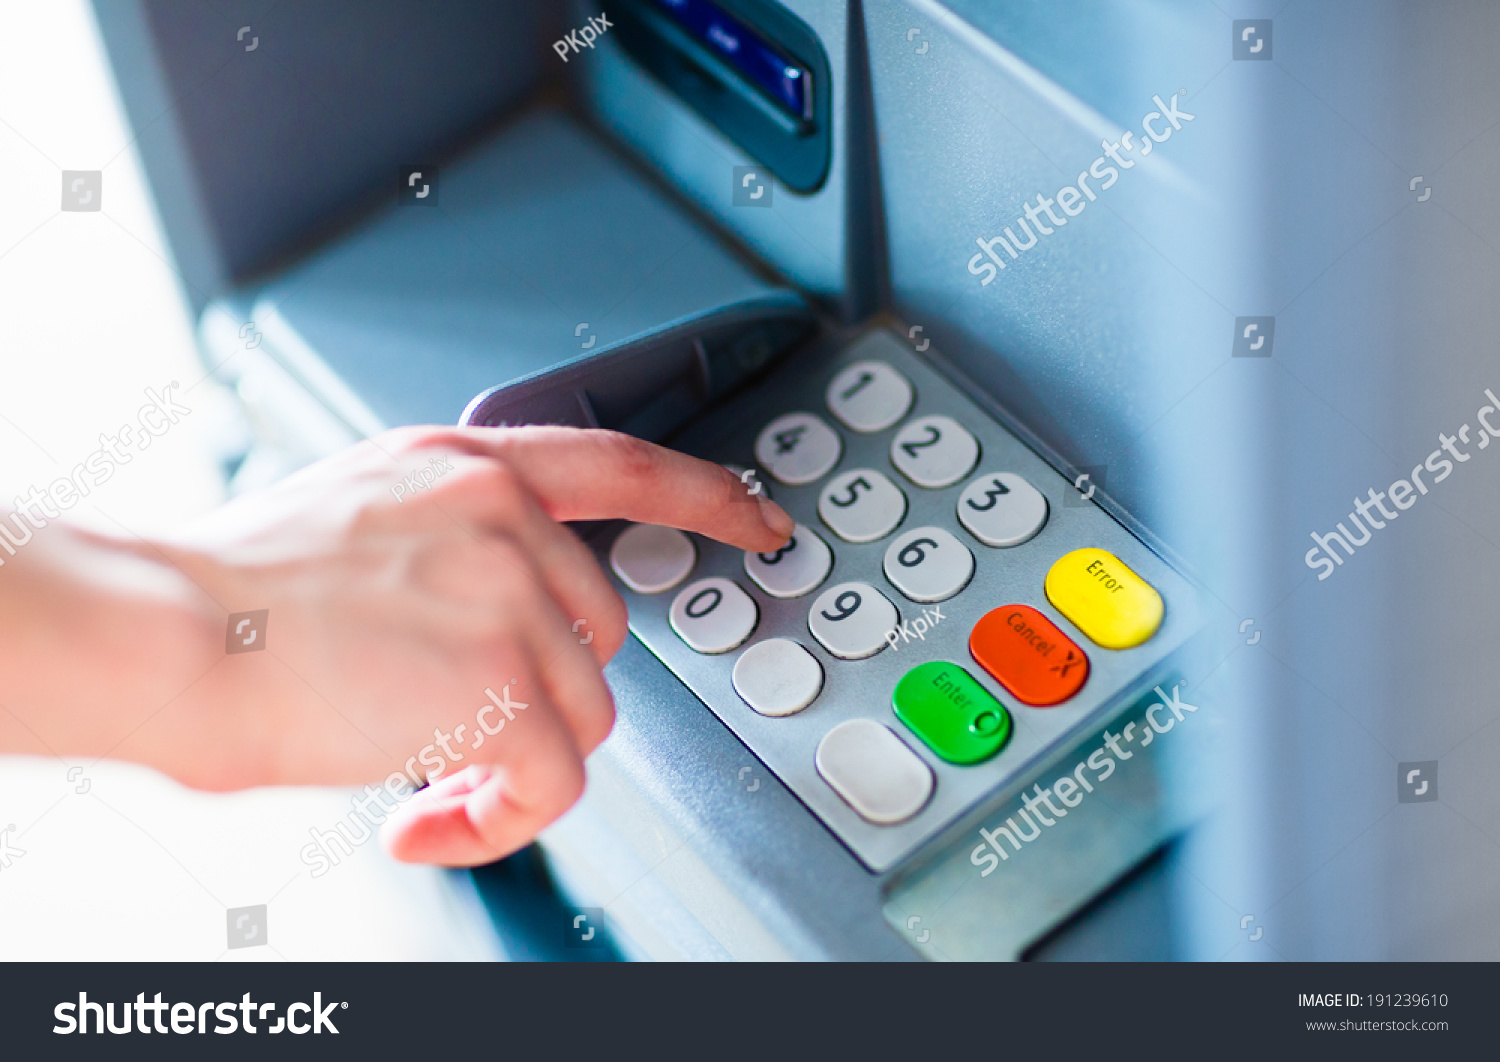 how to break atm machine code